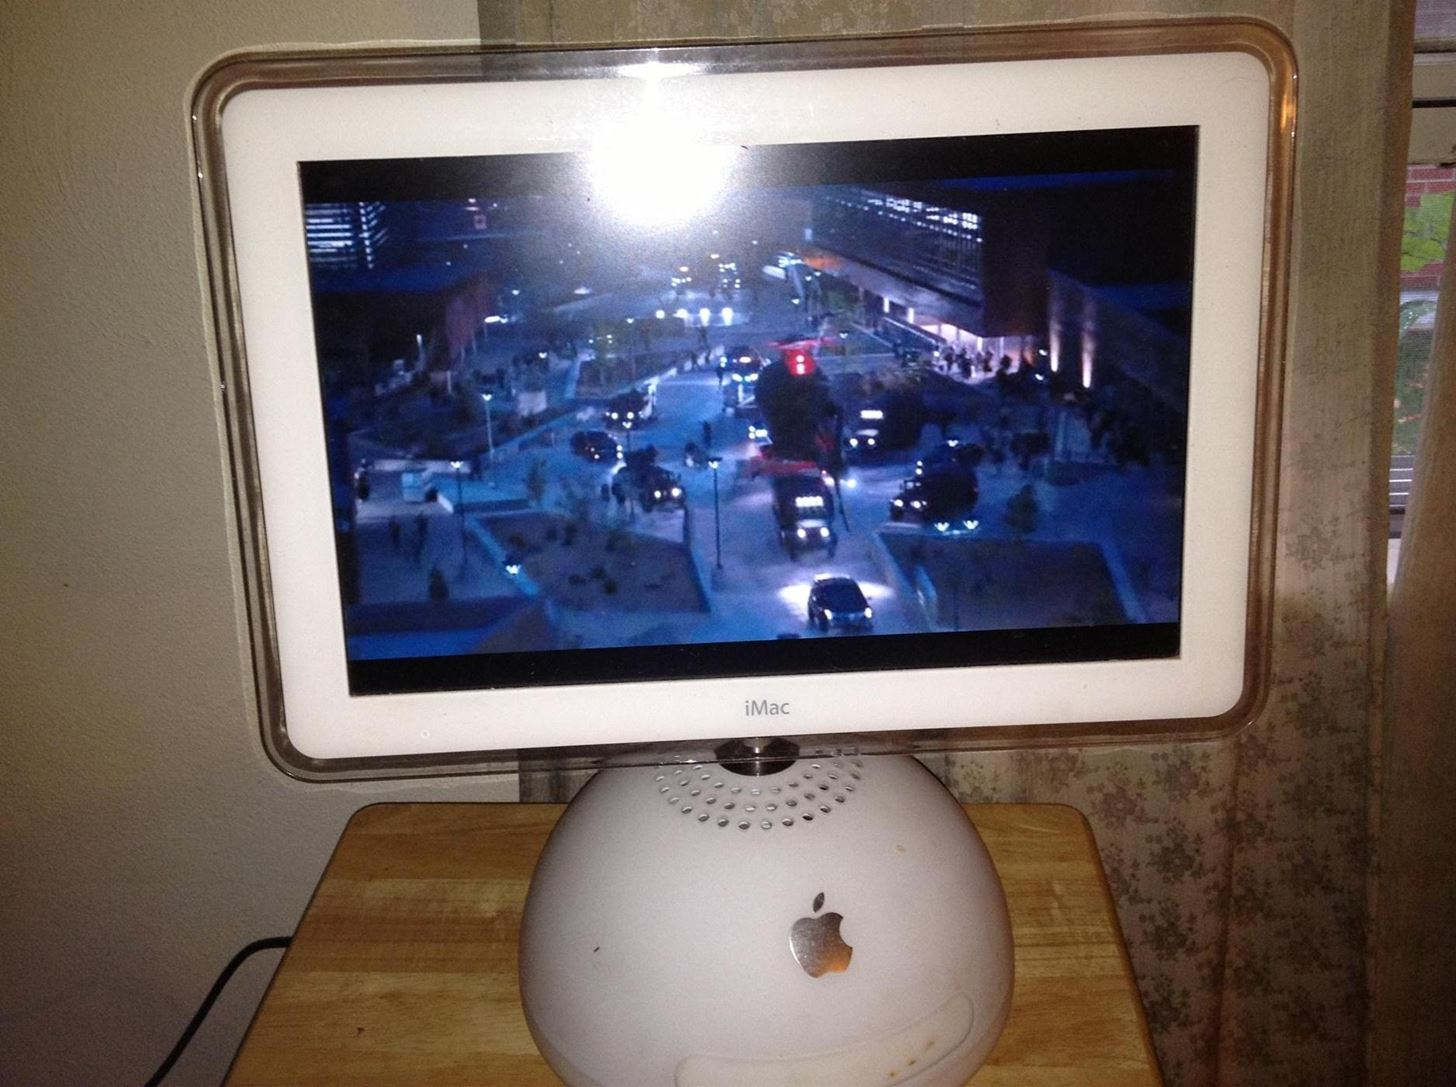 How to Convert Your Old Apple iMac G4 into a Cable-Ready HDTV